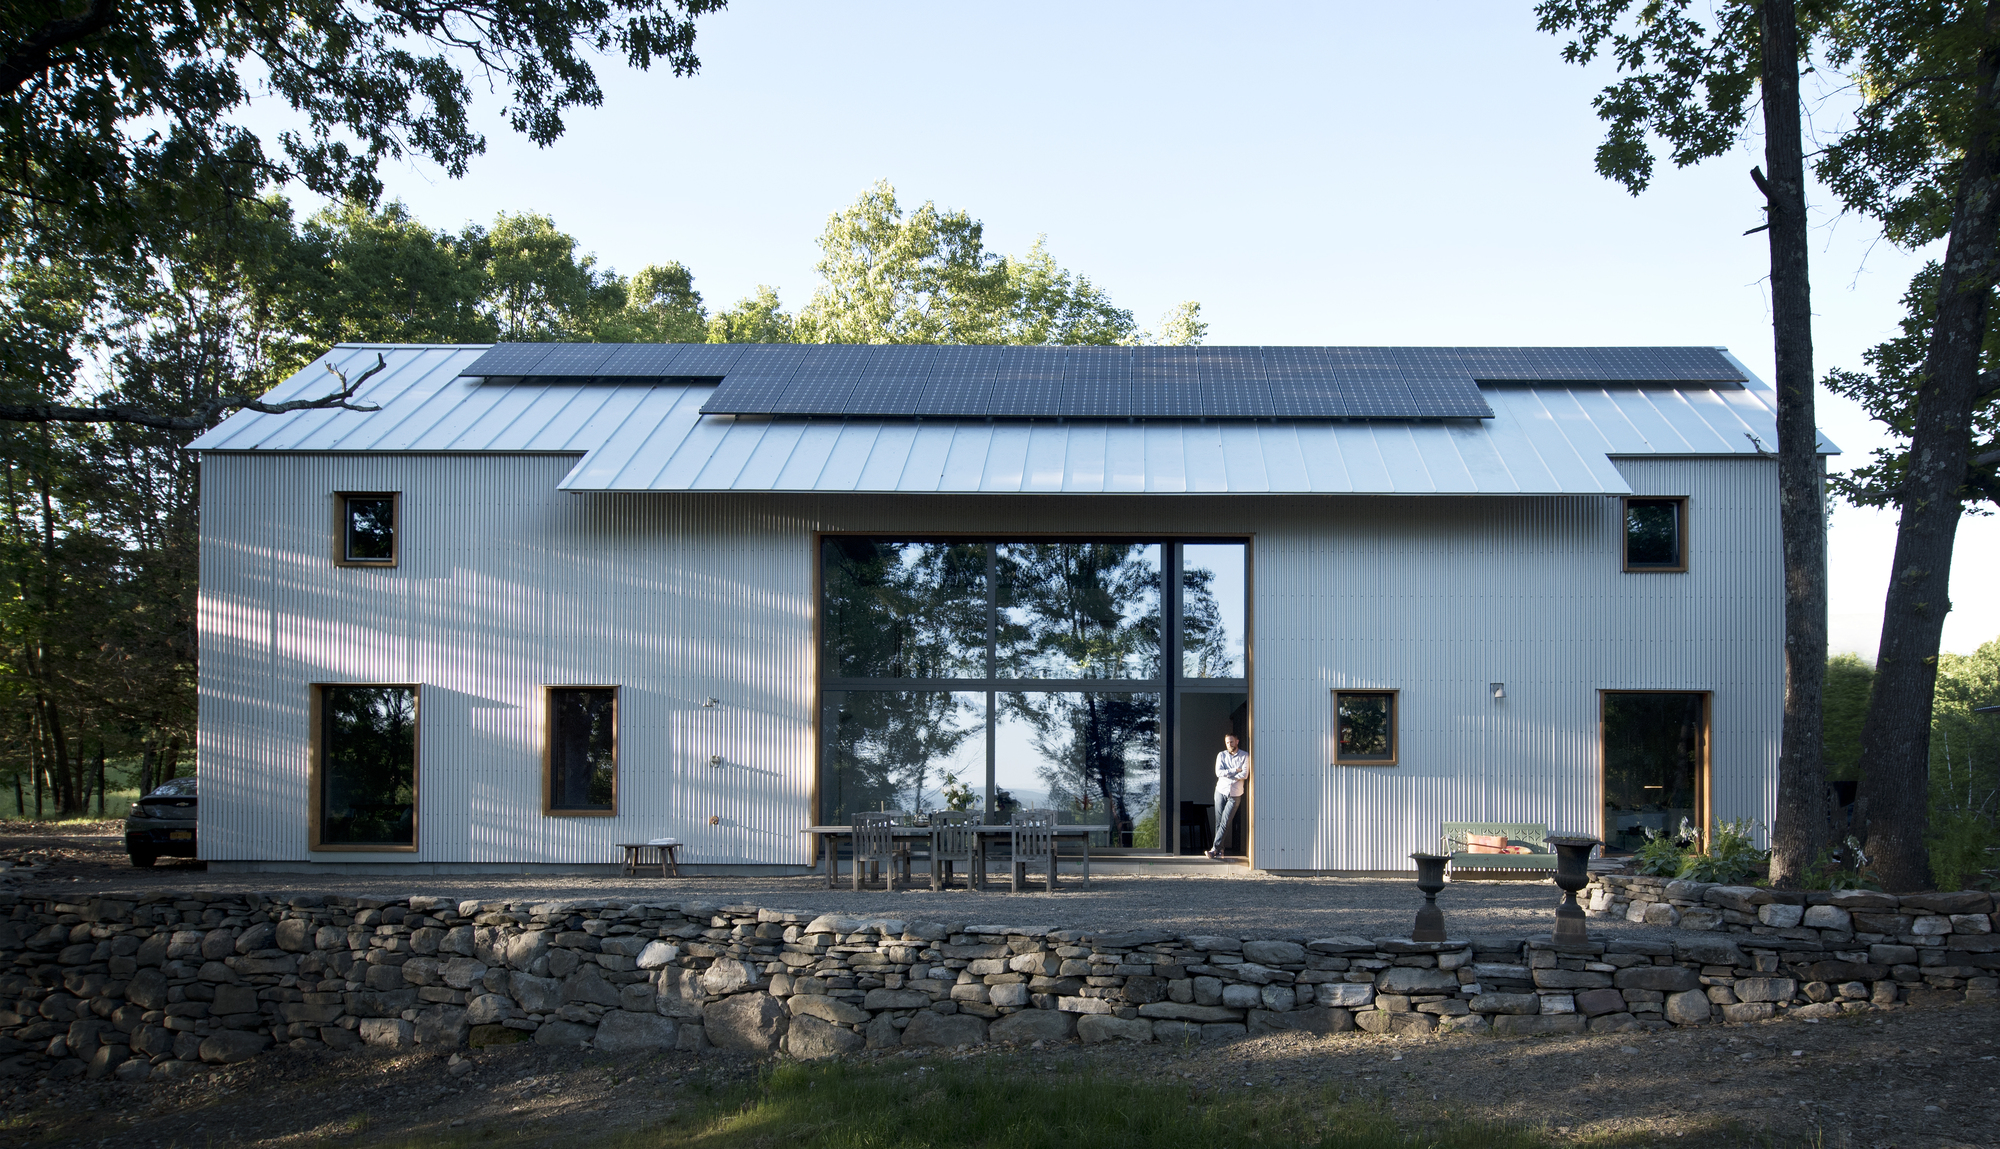 Gallery of Accord, NY Passive House / North River Architecture & Planning - 1